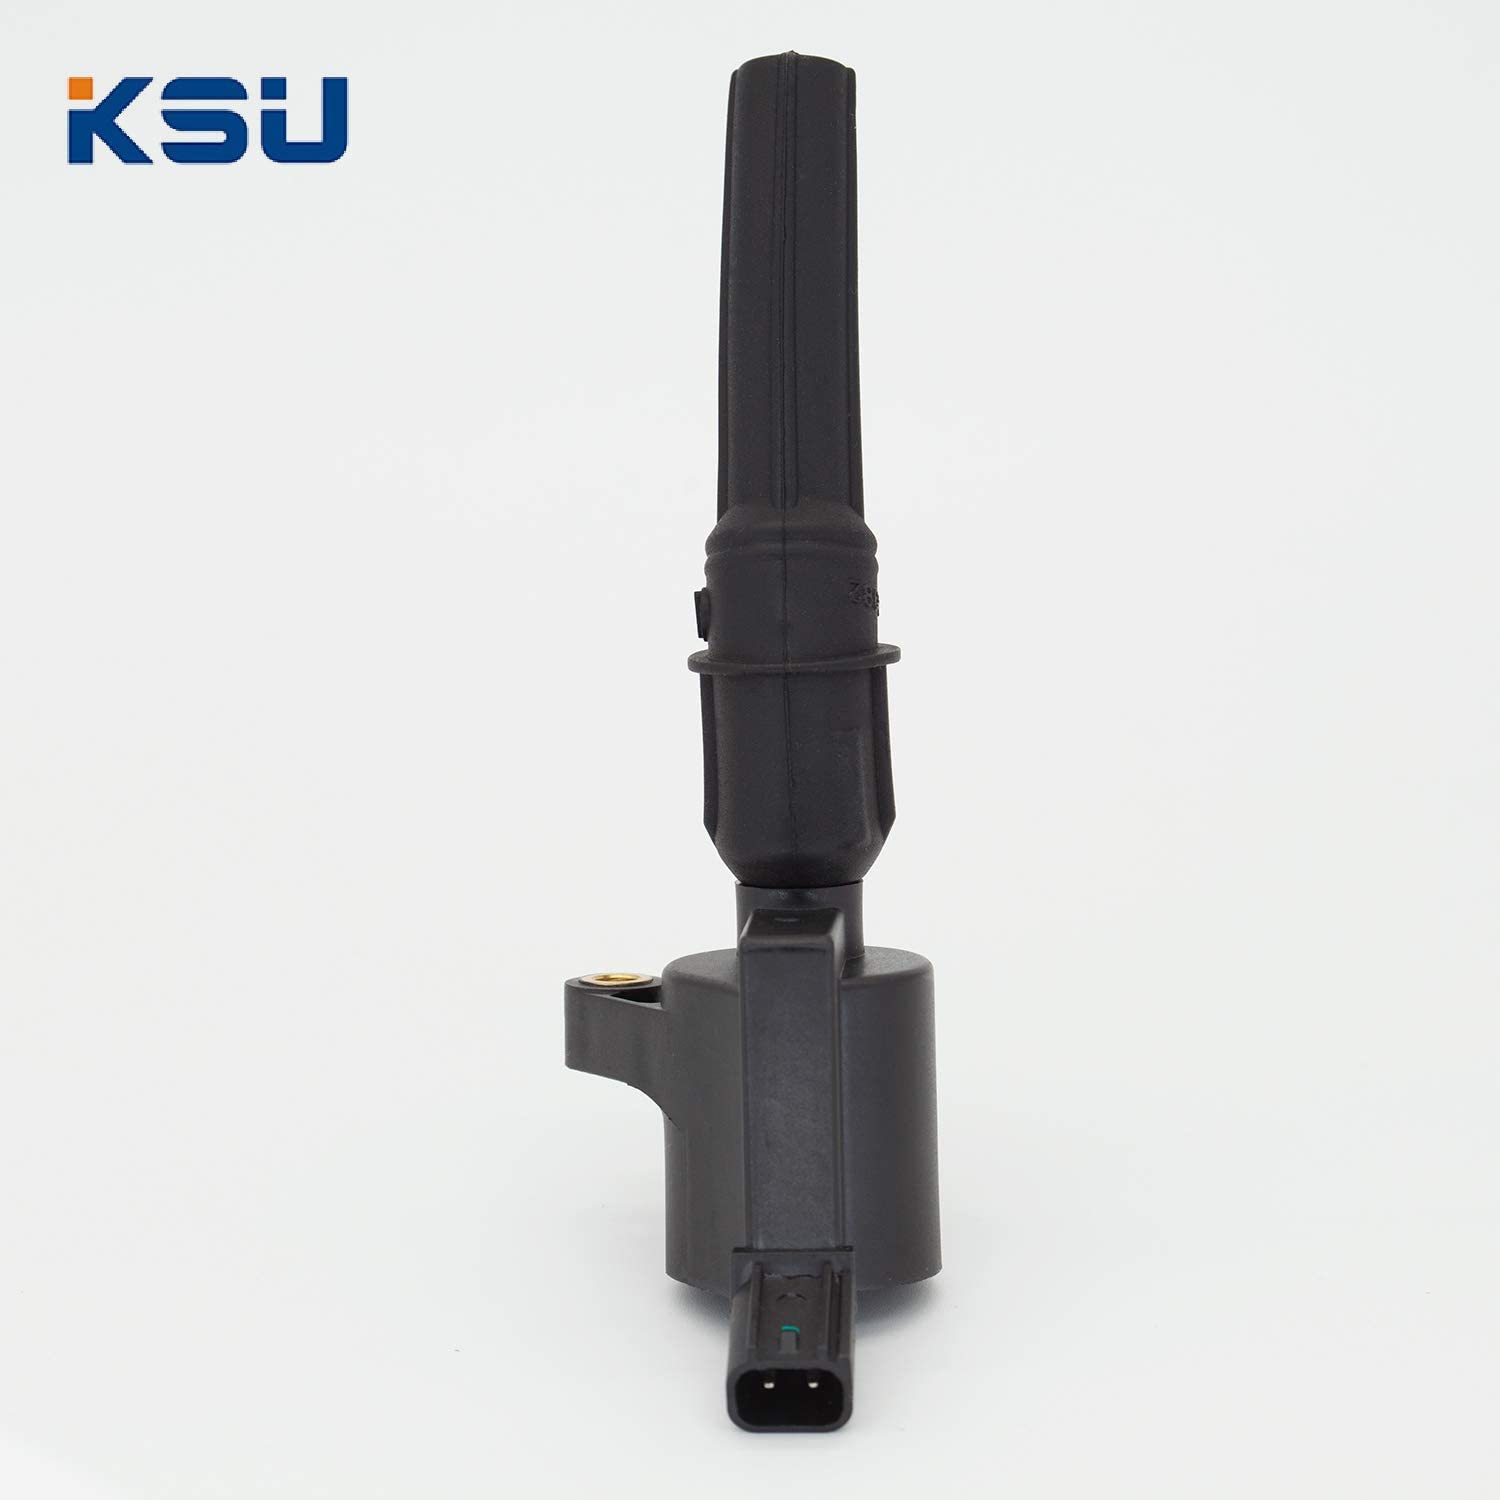 Ignition Coil Pack Set of 8 DG508 fit for Ford 4.6L 5.4L V8 DG457 DG472 DG491 CROWN VICTORIA EXPEDITION F-150 F-250 F-350 F-450 MUSTANG THUNDERBIRD LINCOLN MERCURY EXPLORER 3W7Z-12029-AA